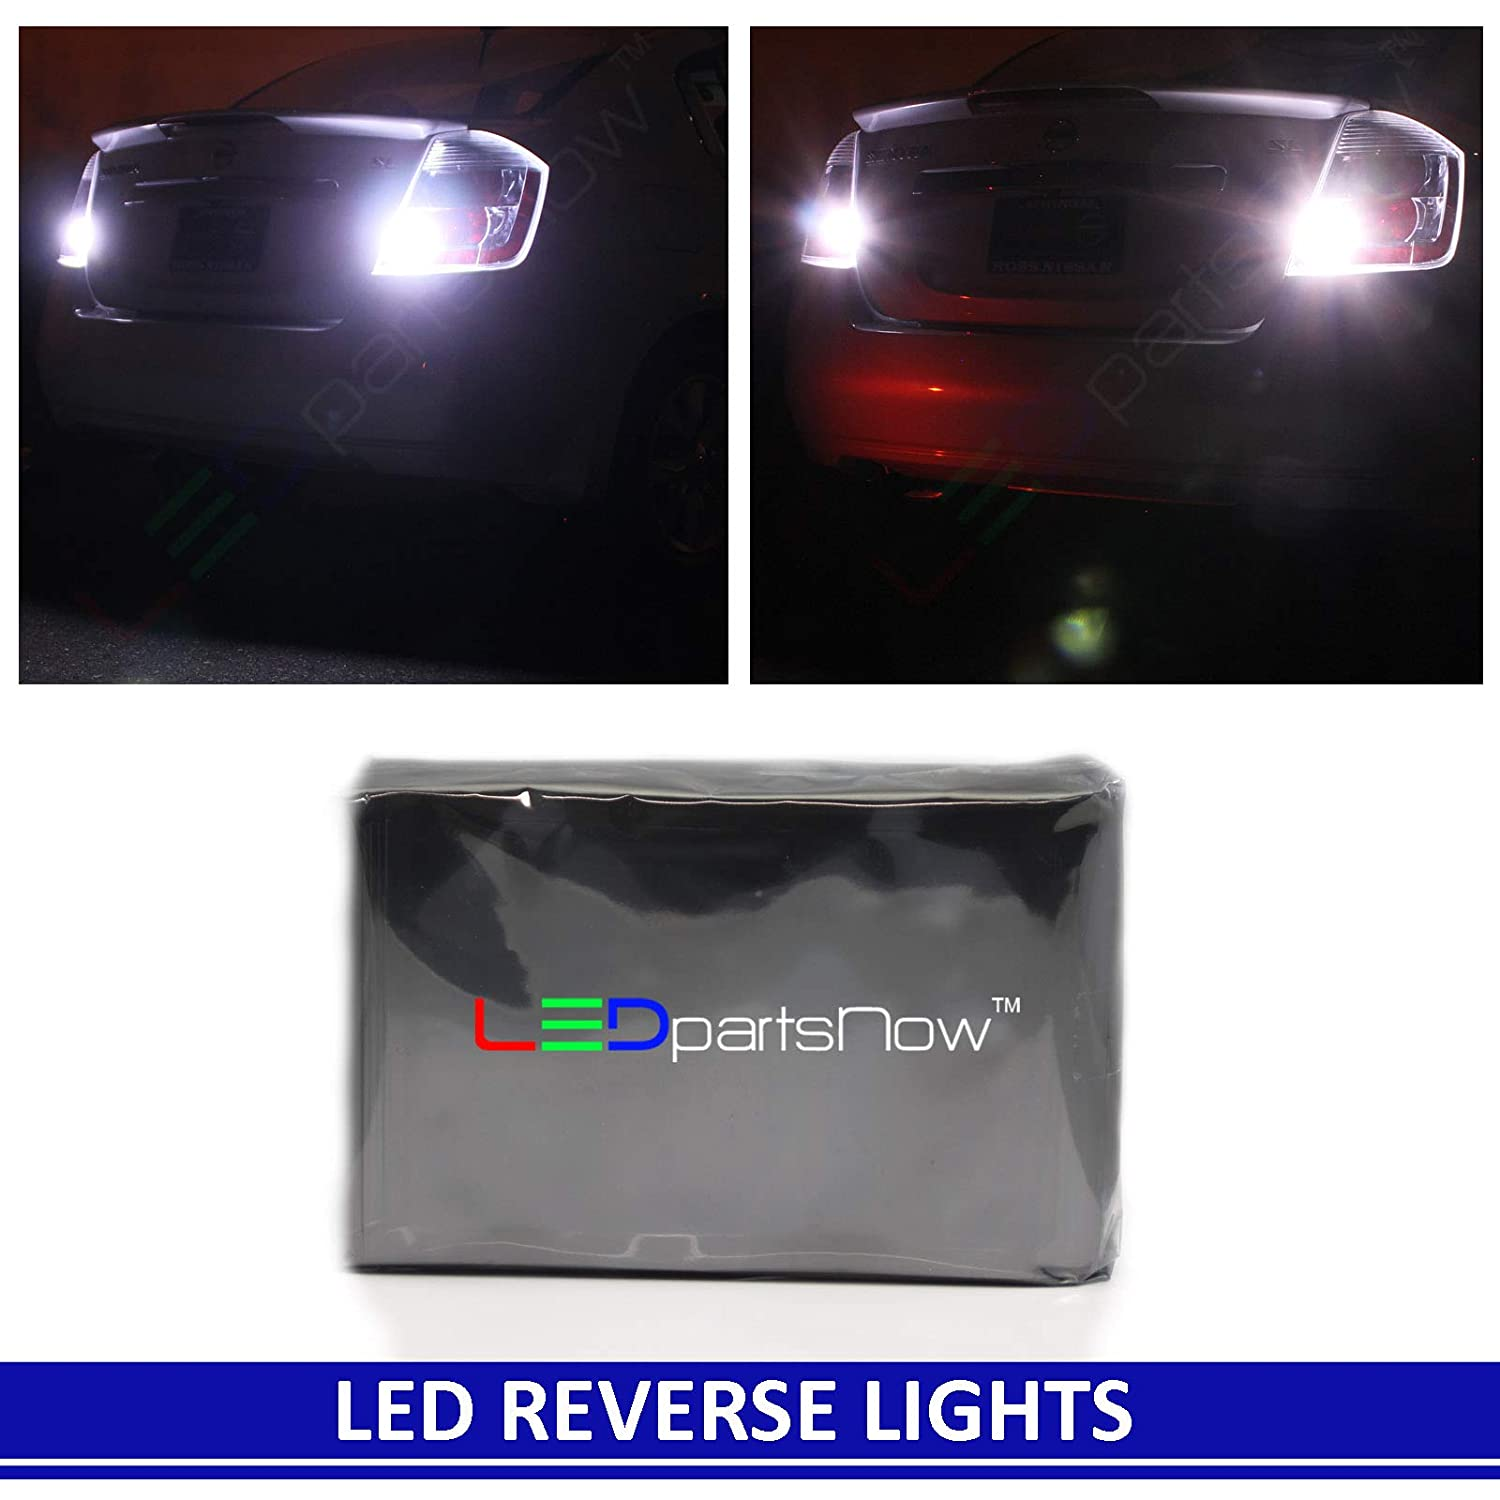 LEDpartsNow WHITE LED Exterior Back Up Reverse Lights Replacement for 2008-2017 Subaru Impreza WRX STI Sedan (2 Bulbs), T10 T15 921 912 906 901 909